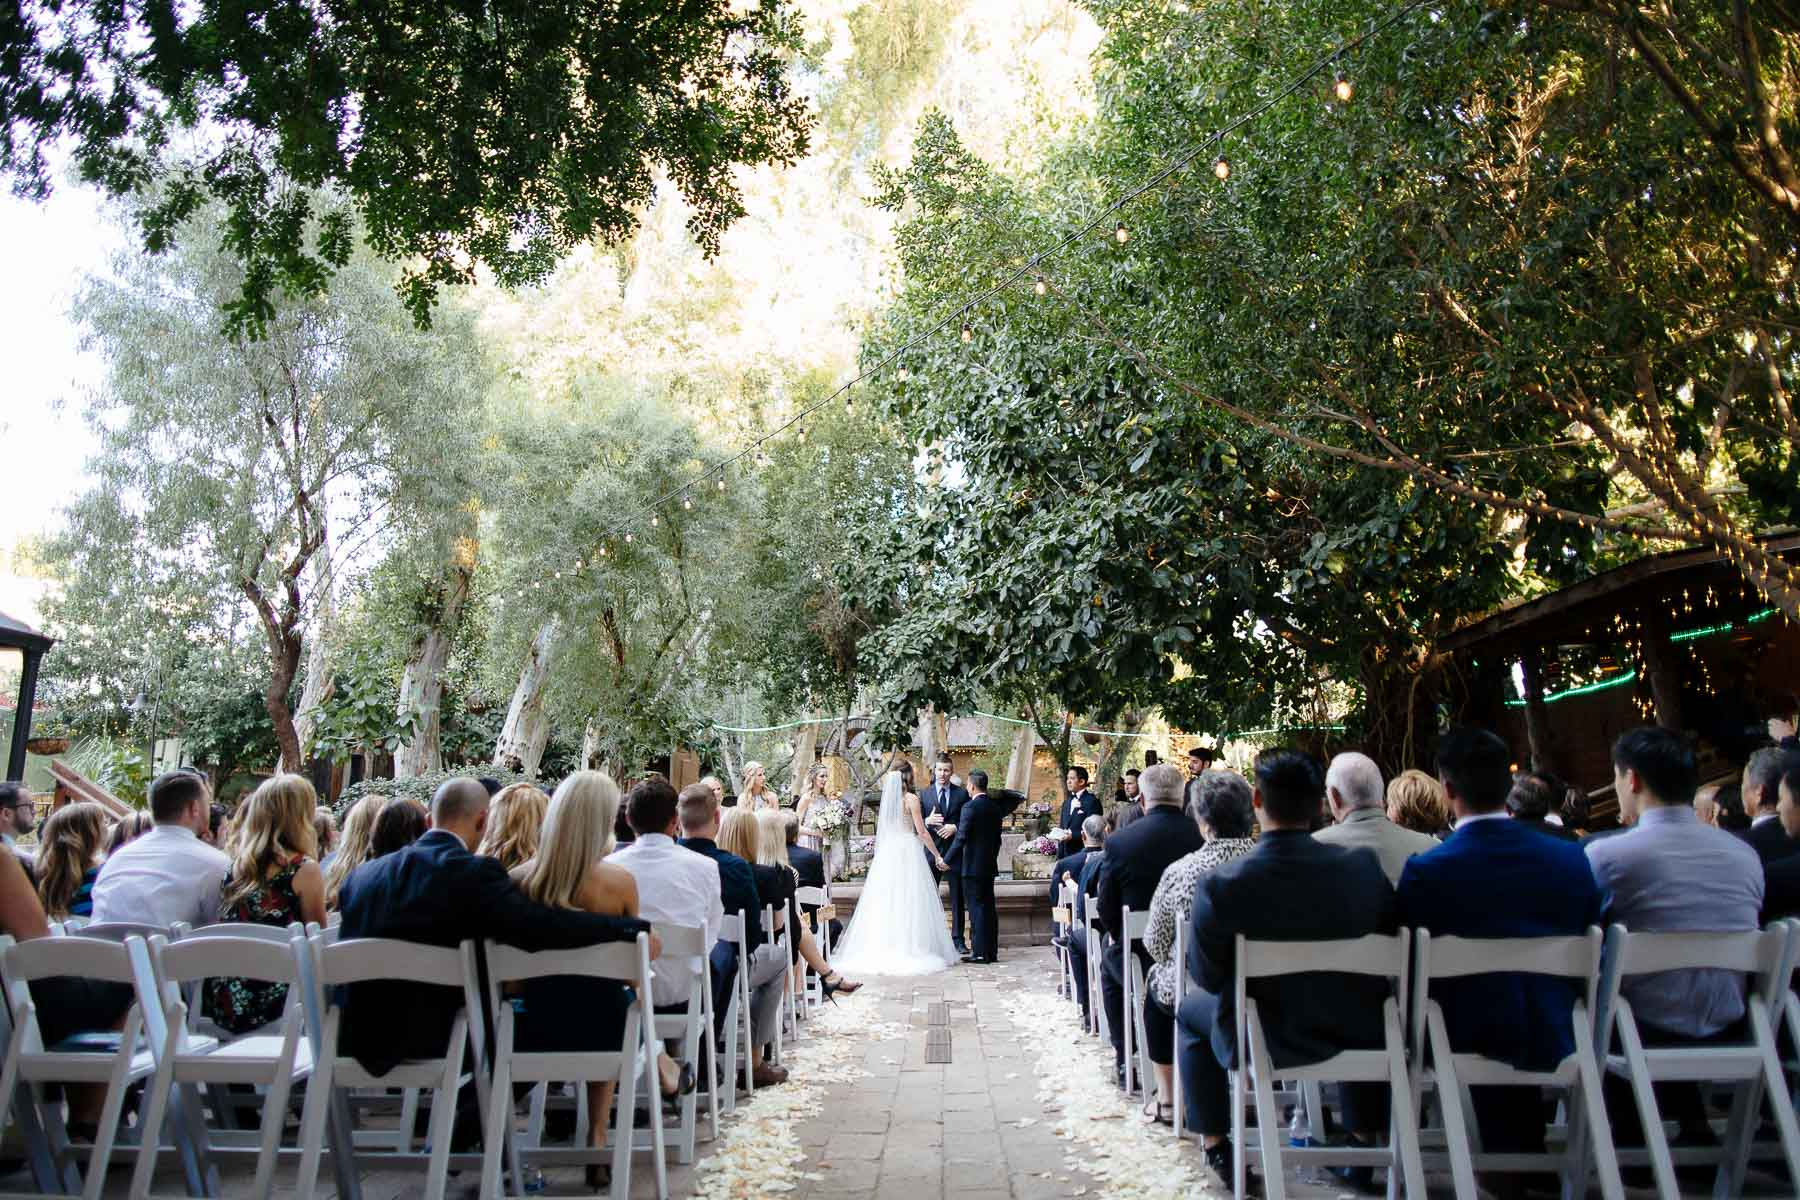 161112-Luxium-Weddings-Arizona-Jon-Madison-Boojum-Tree-First-Look-026.jpg